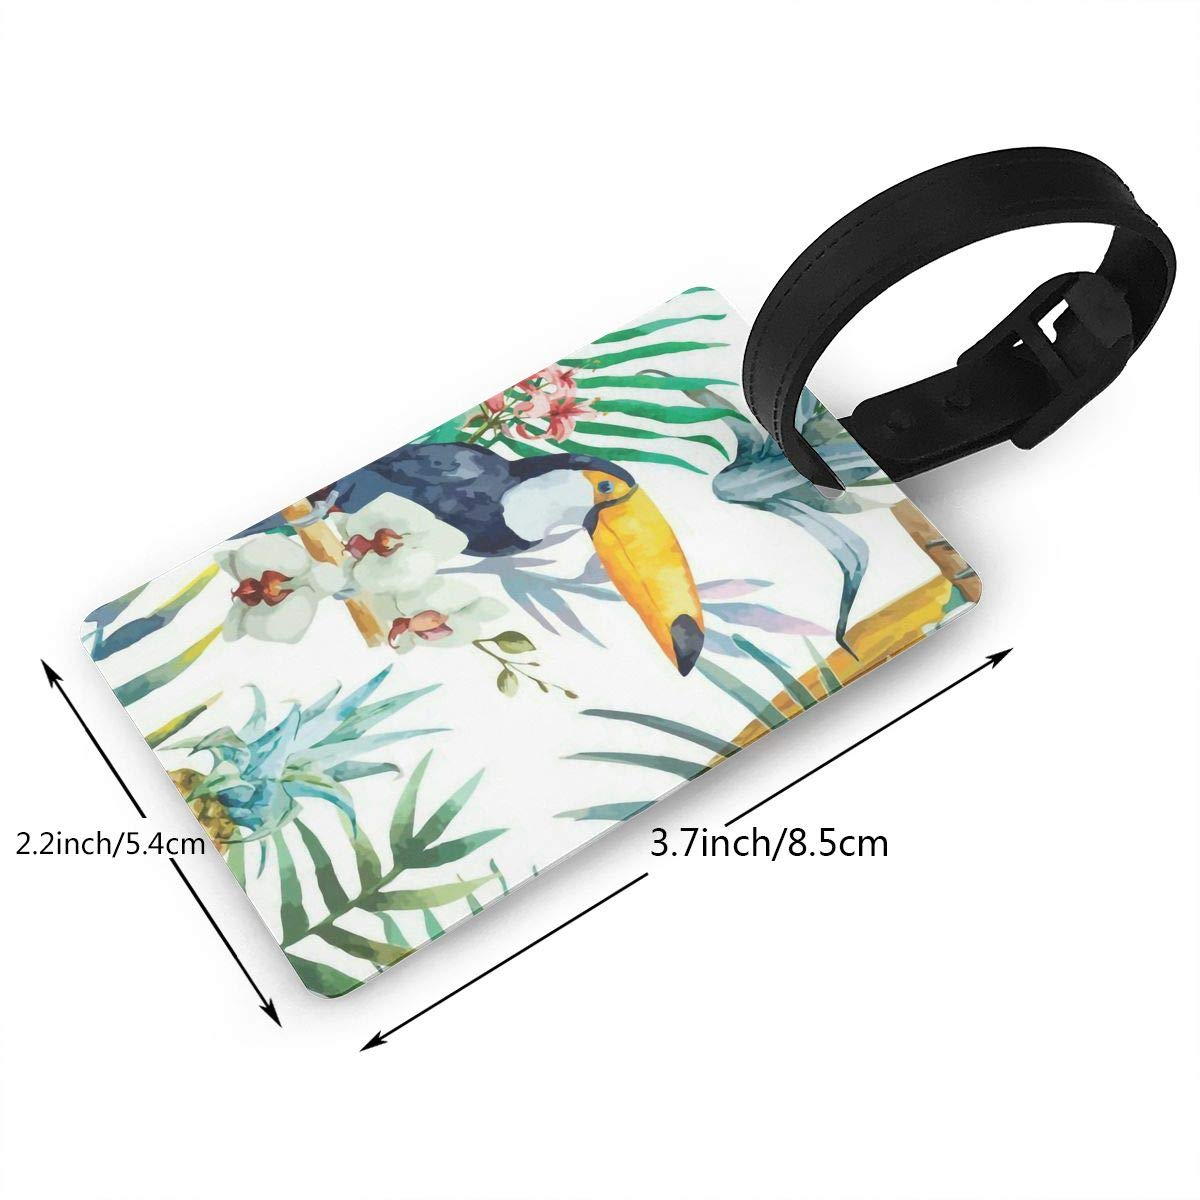 2 Pack Luggage Tags Toucans Pattern Handbag Tag For Travel Bag Suitcase Accessories